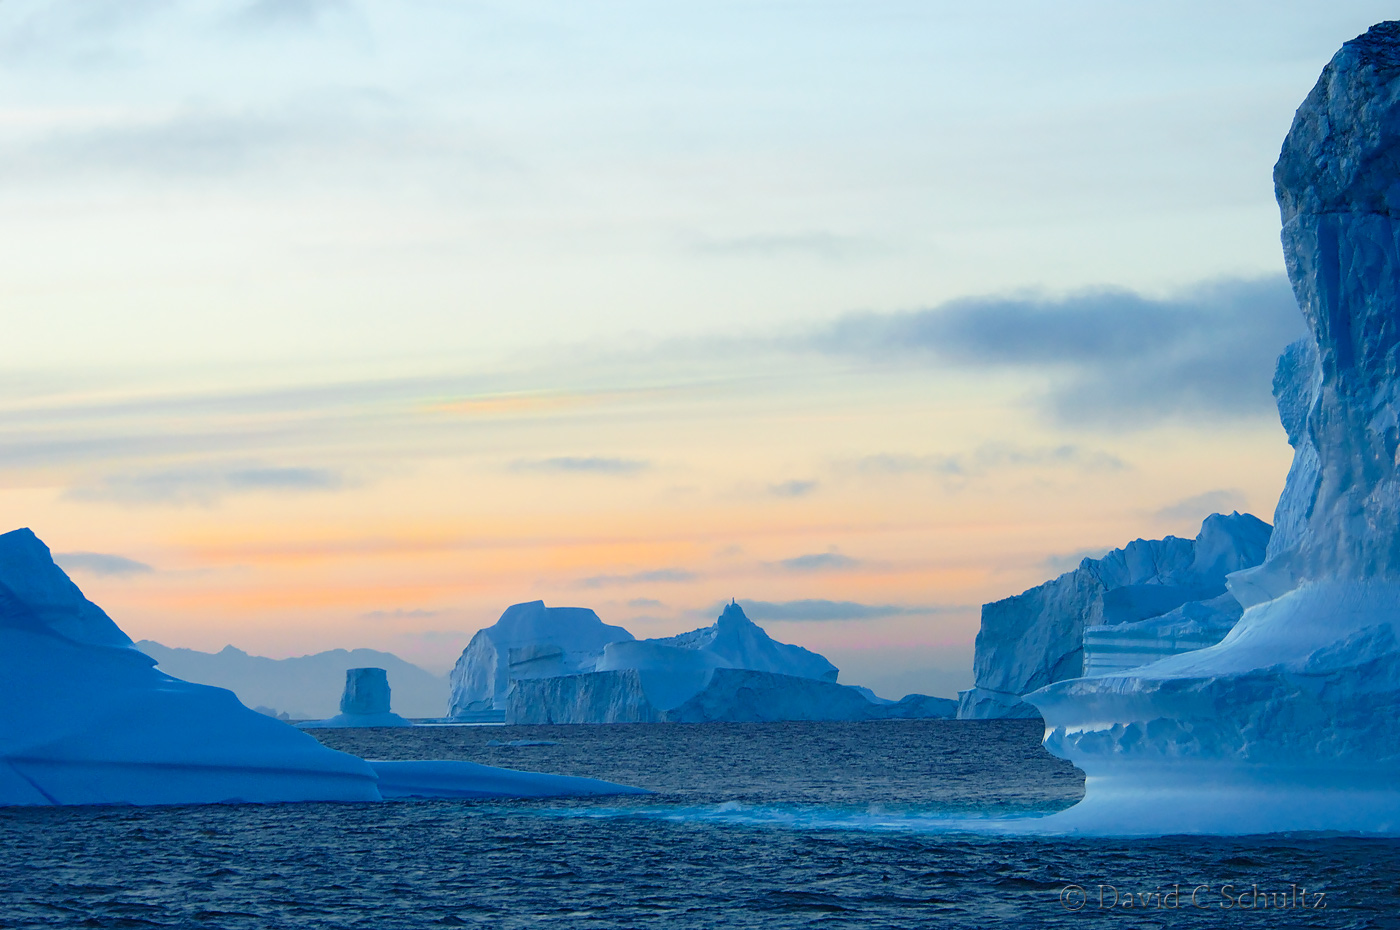 Iceberg at sunset in Scoresby Sund Fjord - Image #167-262